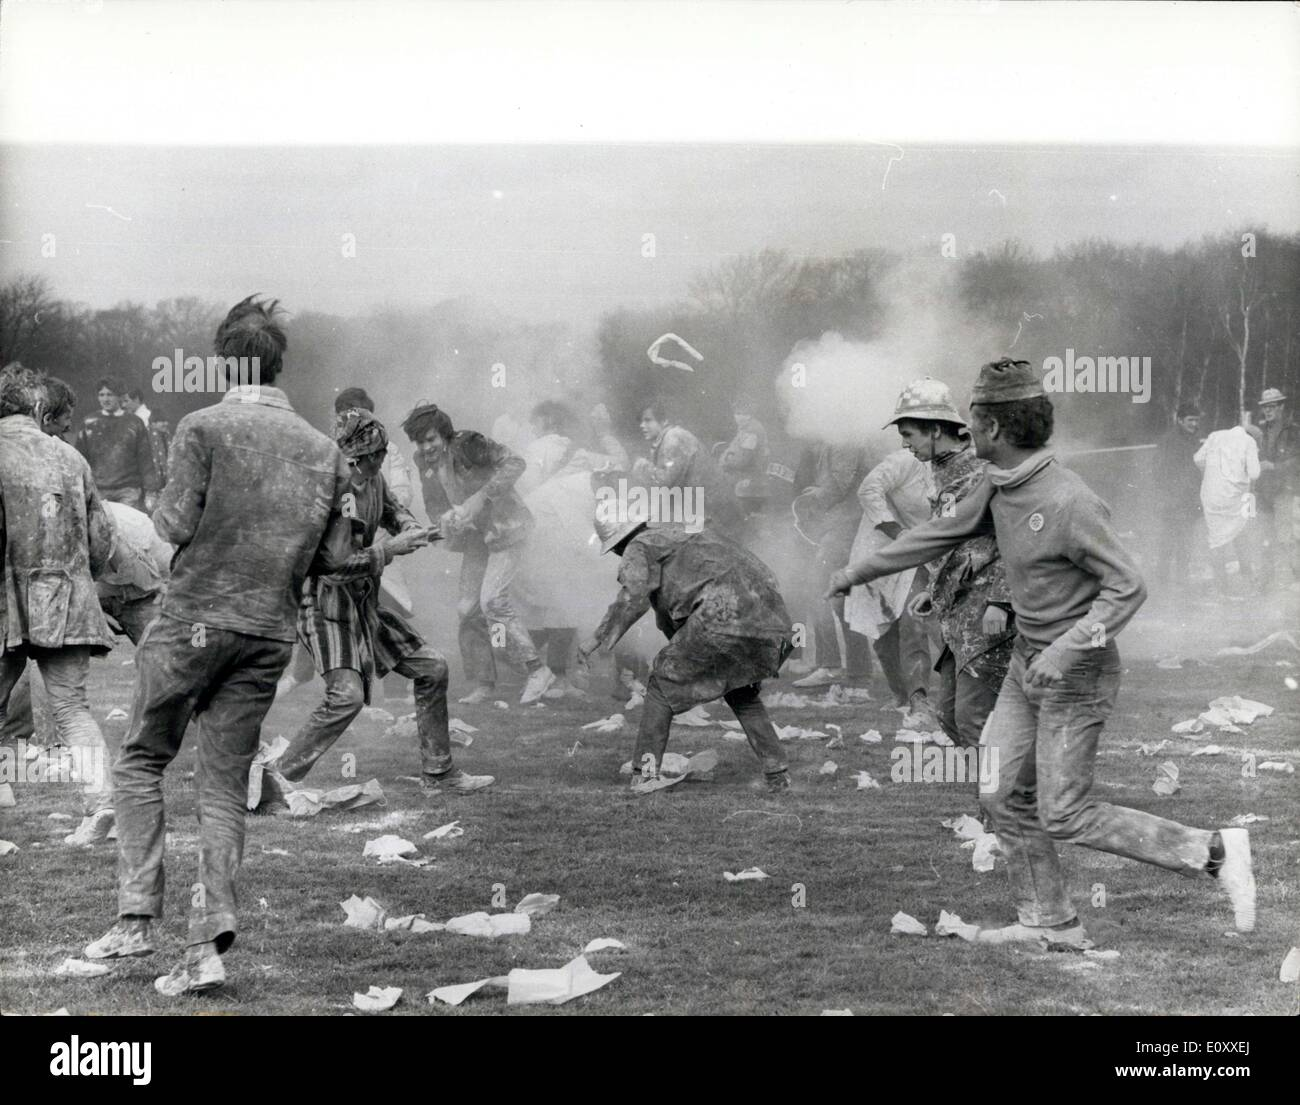 Mar. 14, 1968 - Flour fight by Students: Students all over the world are in tumult, demonstrating and rioting, but this is a friendly fight between doctor students of Guy's Hospital and London Hospital, prior to the start of the Hospital Rugby Cup Final. - Stock Image